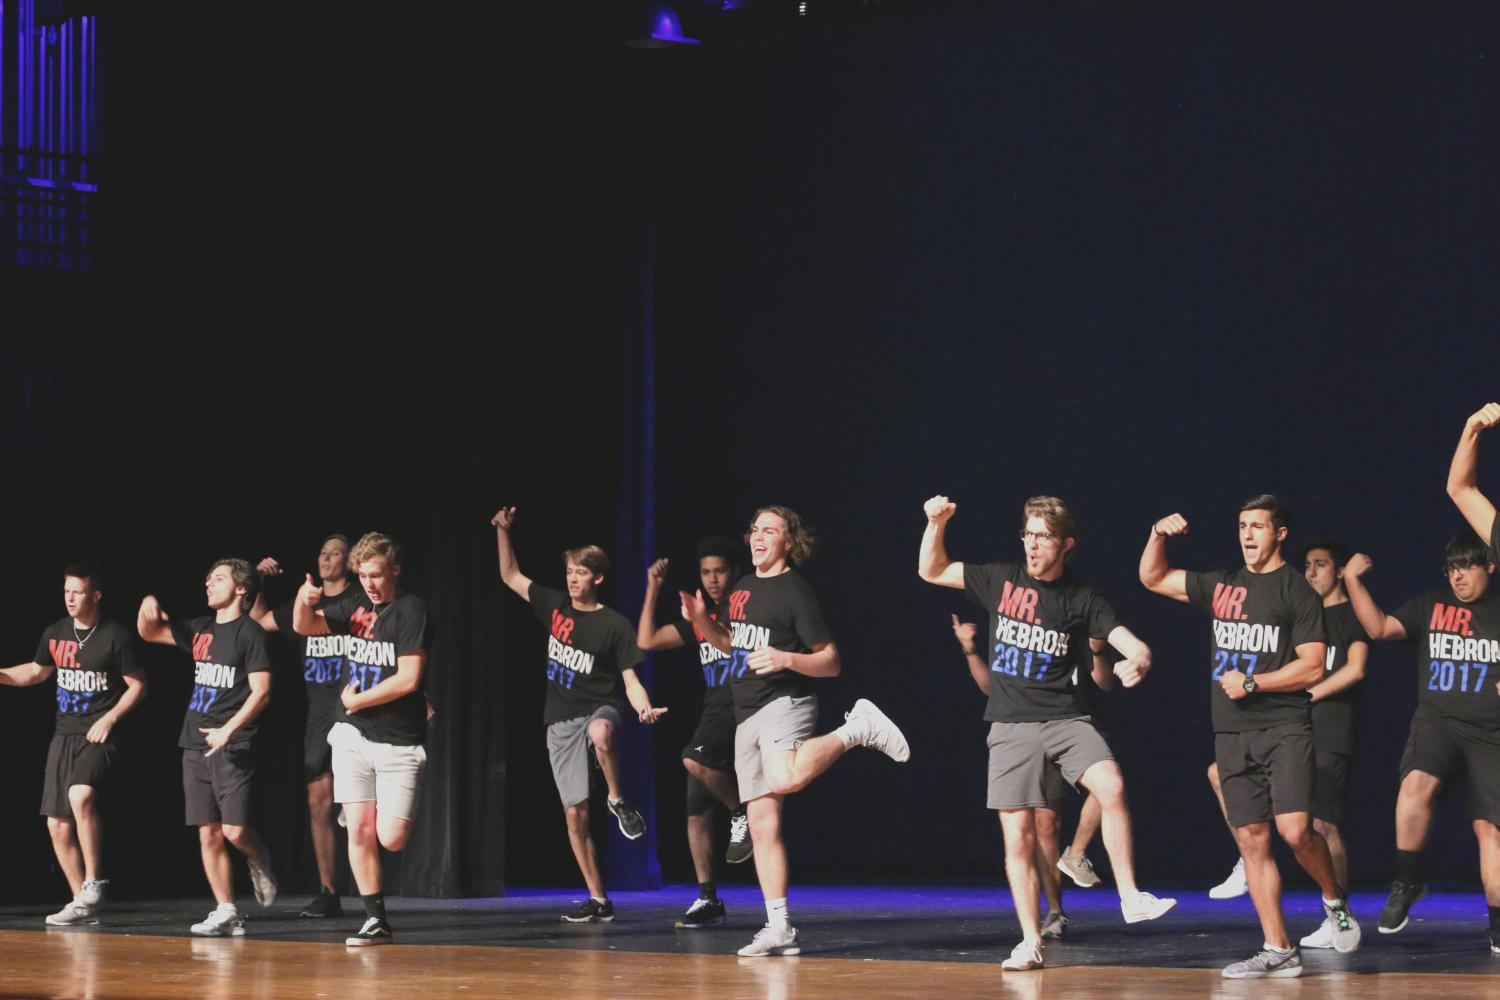 Last year's Mr. Hebron contestants perform a group dance. This year's Mr. Hebron pageant will be held May 10.